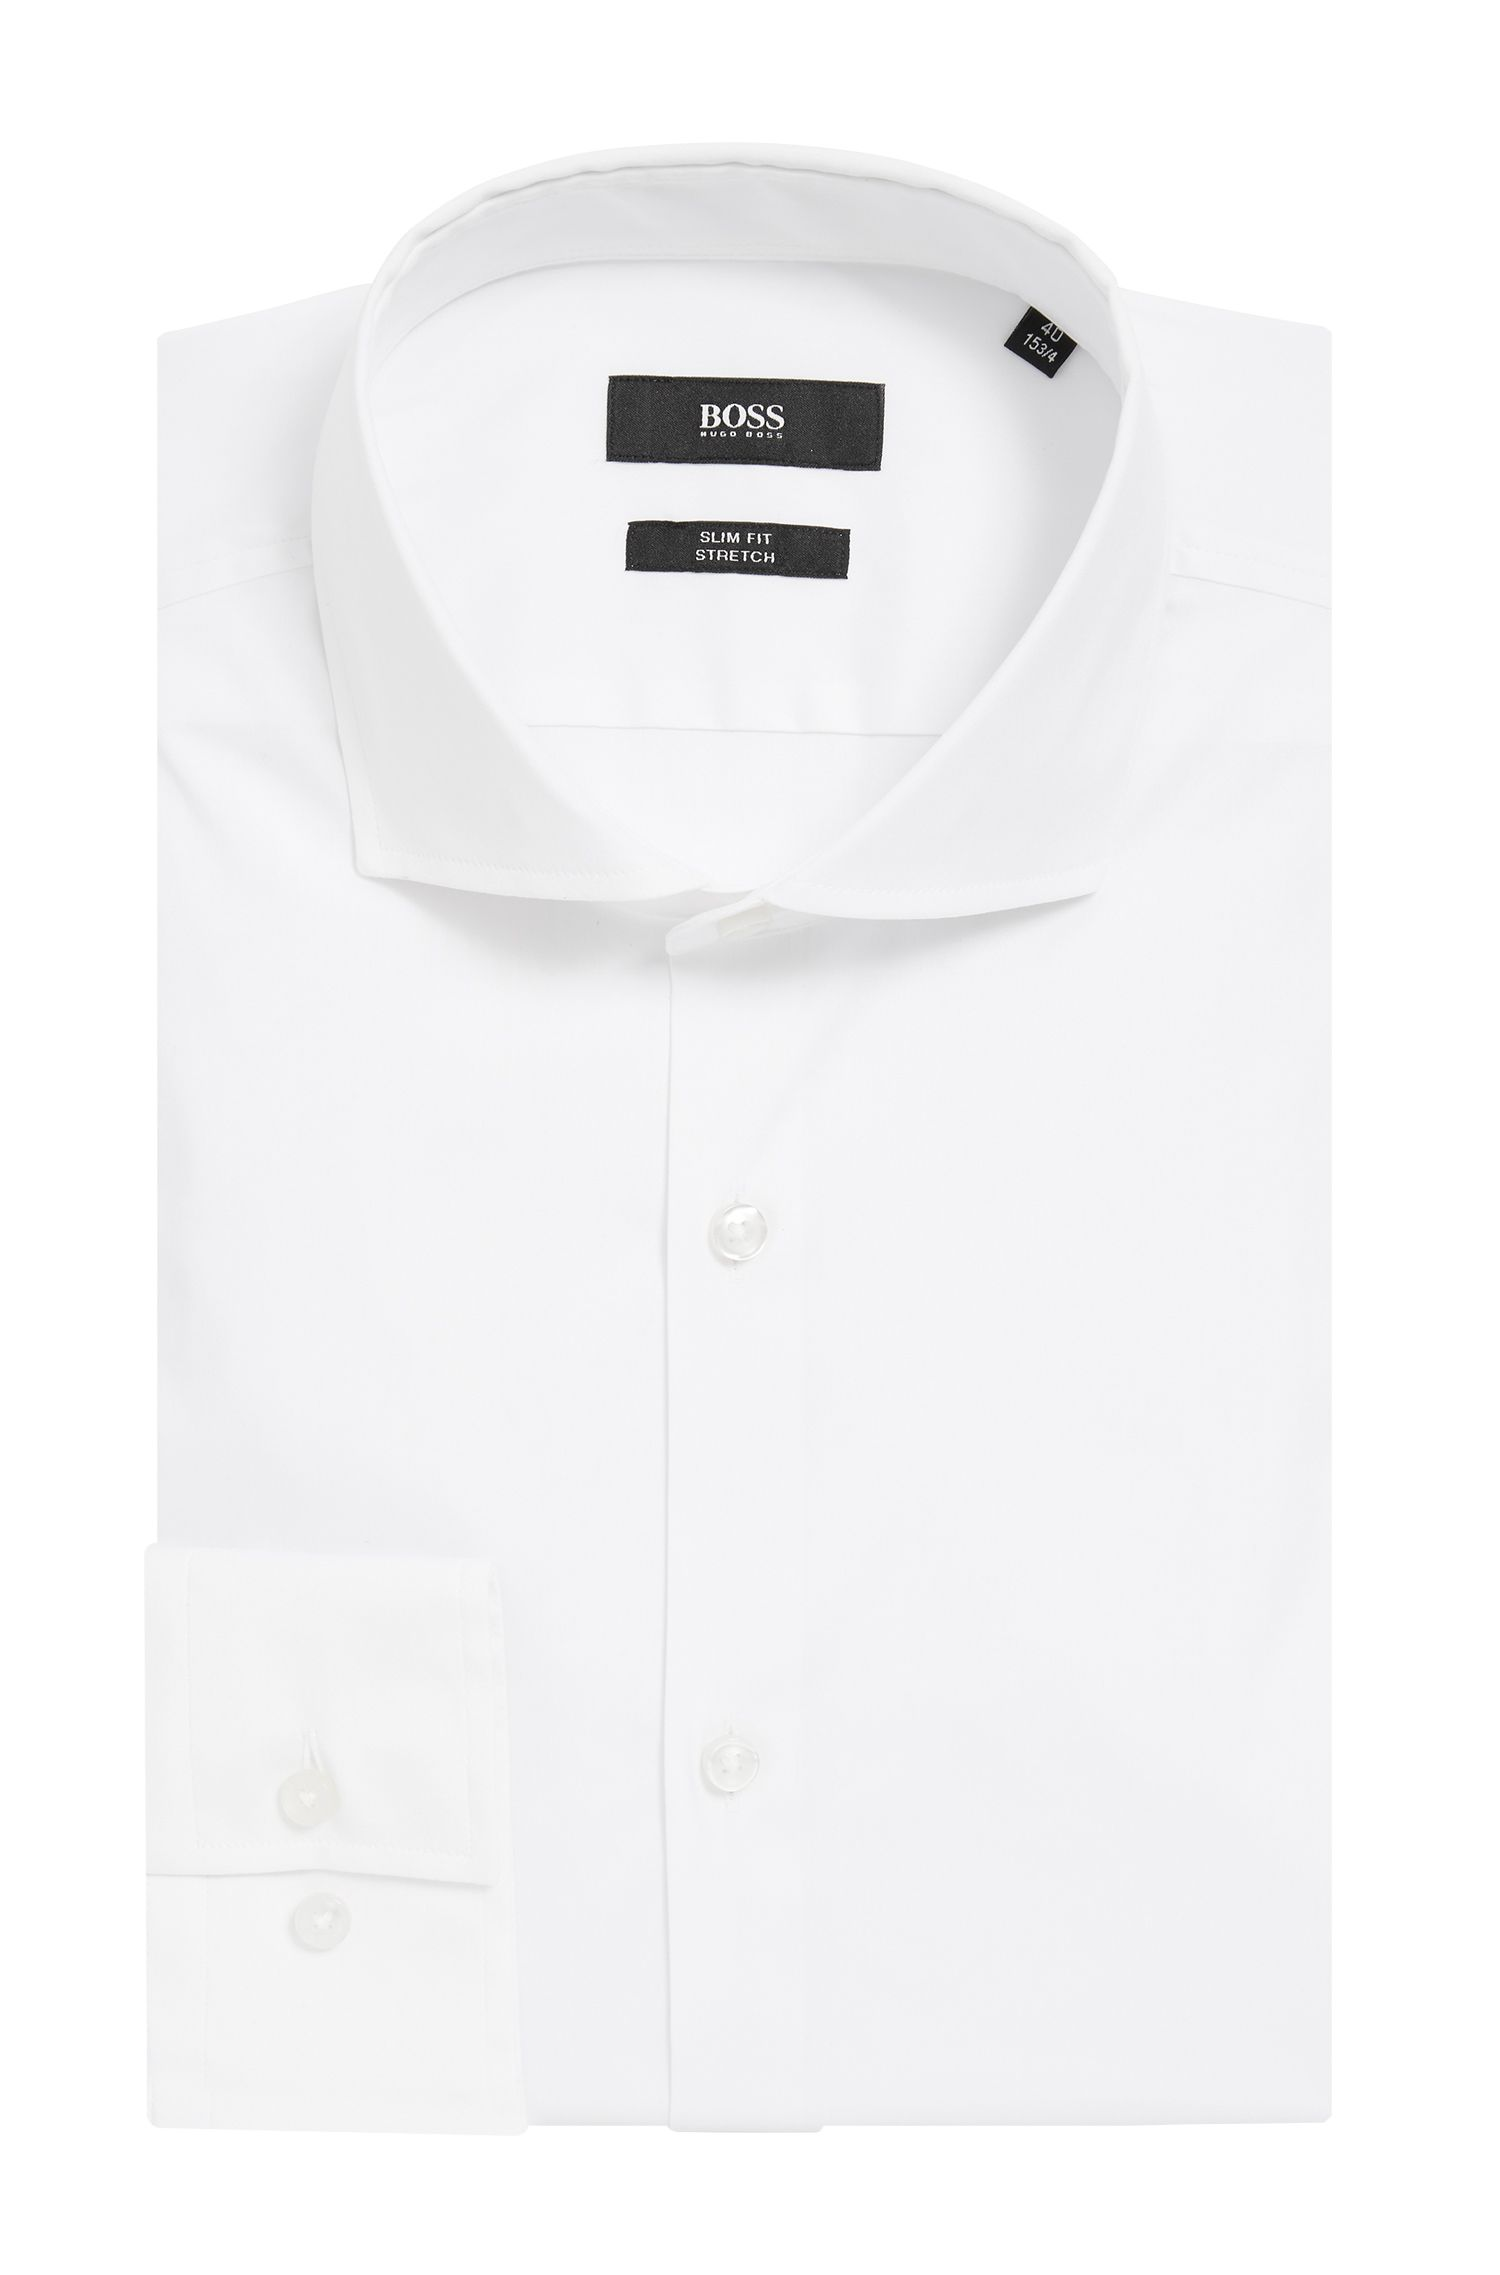 Stretch Cotton Dress Shirt with Stretch Tailoring, Slim Fit | Jason, White